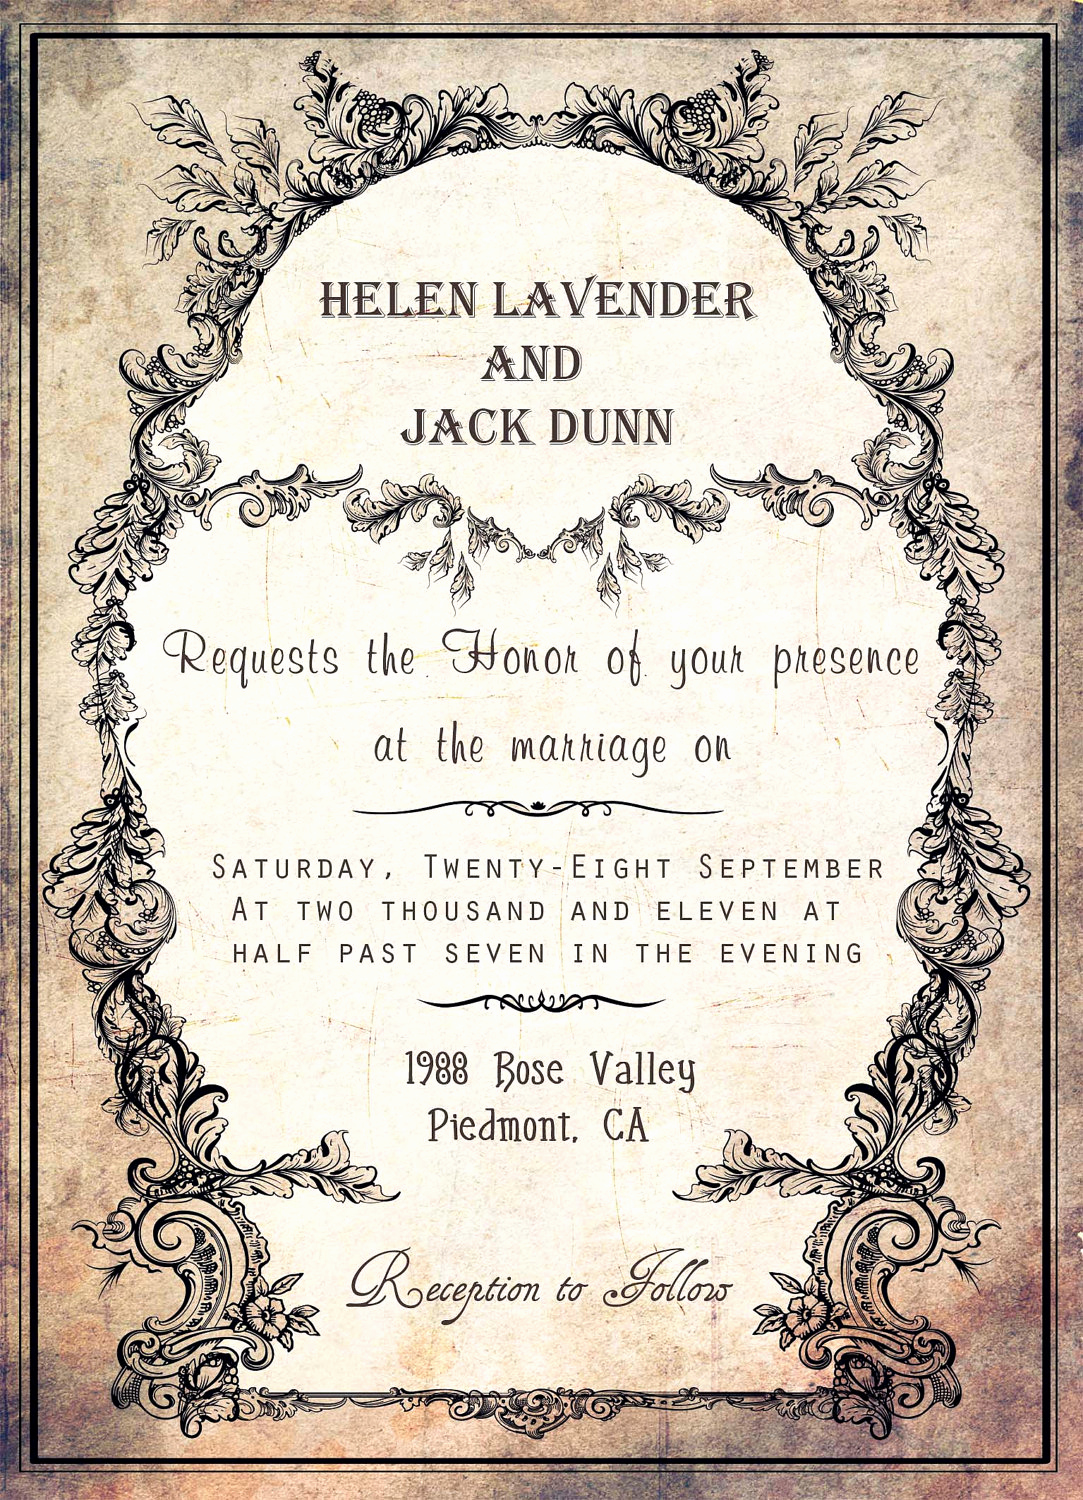 Wedding Invitation Templates Free Downloads Beautiful Silver Wedding Invitations Free Wedding Invitation Templates